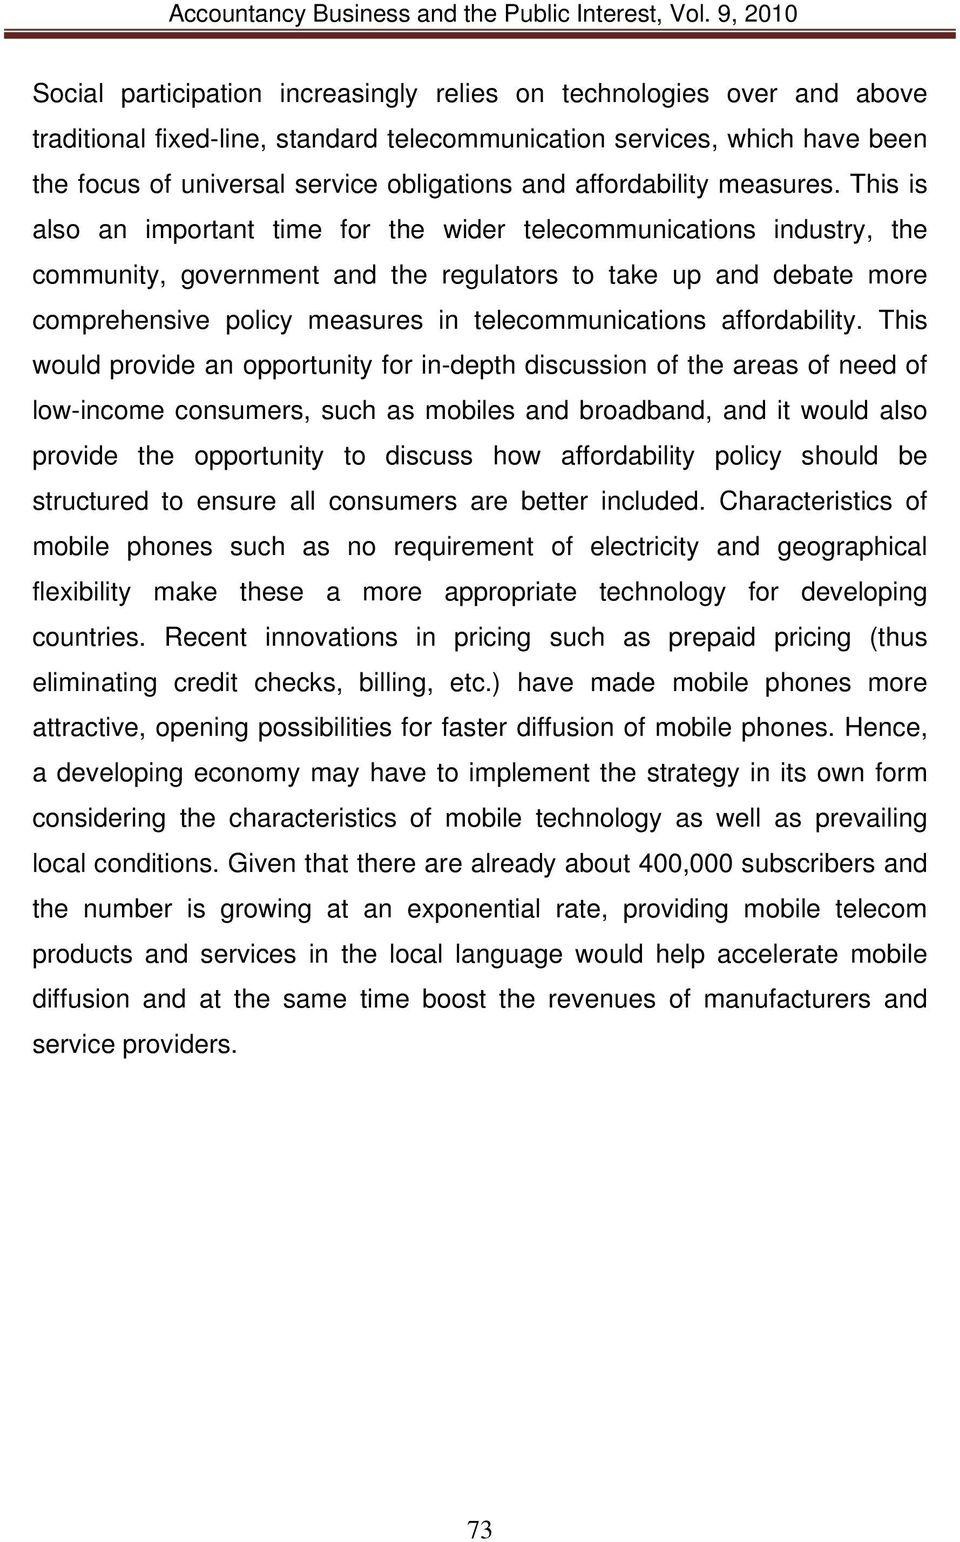 This is also an important time for the wider telecommunications industry, the community, government and the regulators to take up and debate more comprehensive policy measures in telecommunications